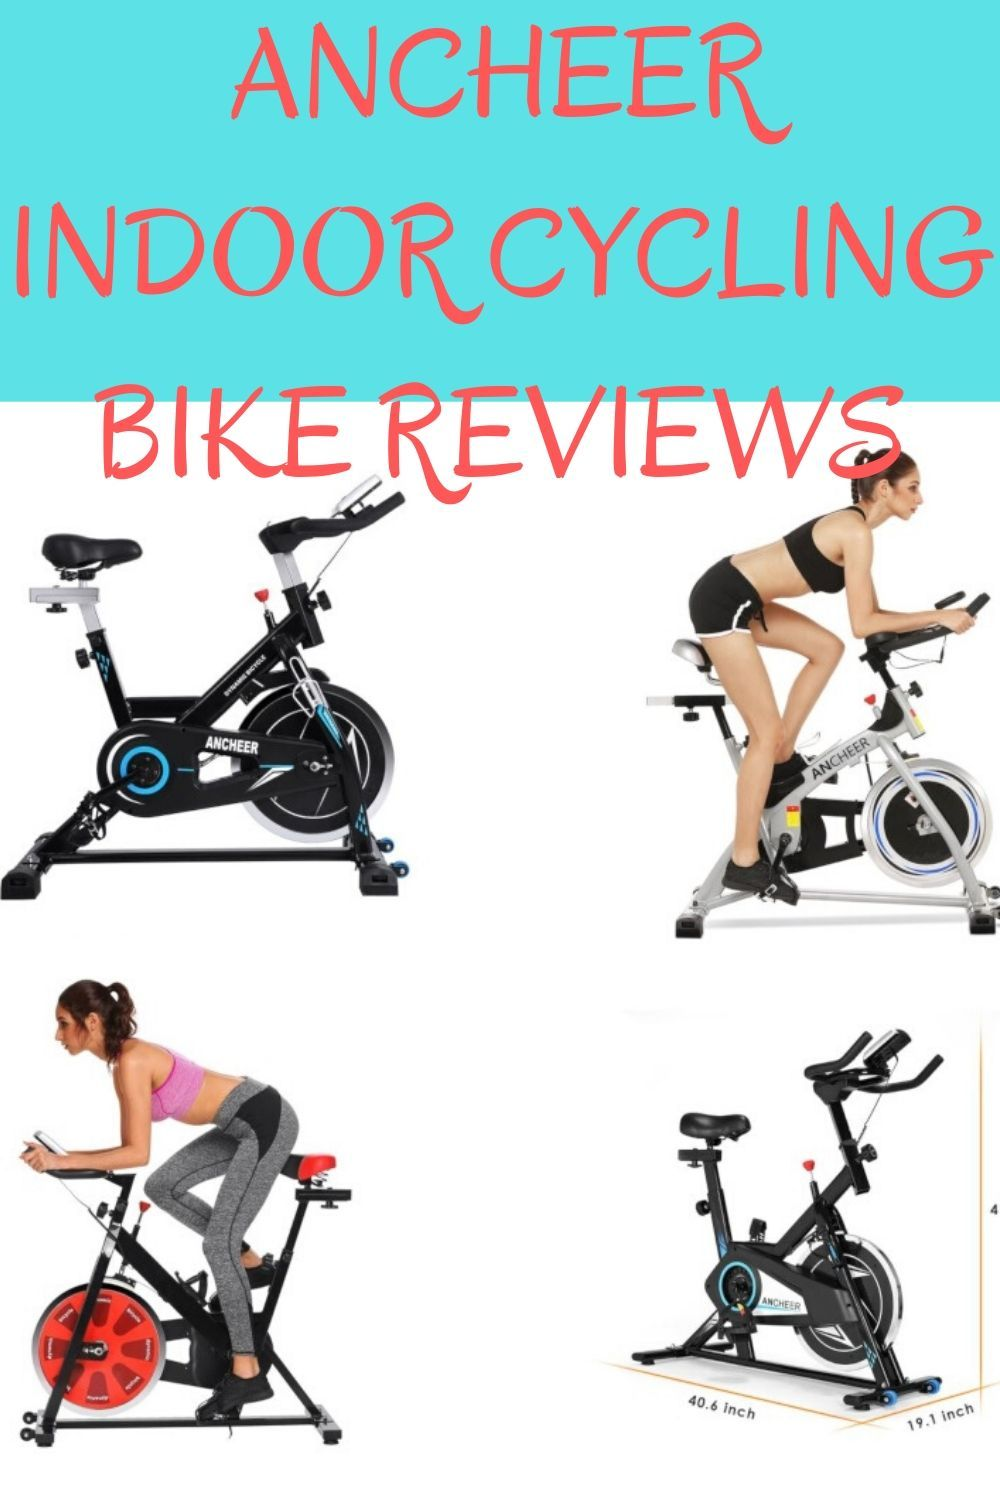 Ancheer Indoor Cycling Bike Reviews In 2020